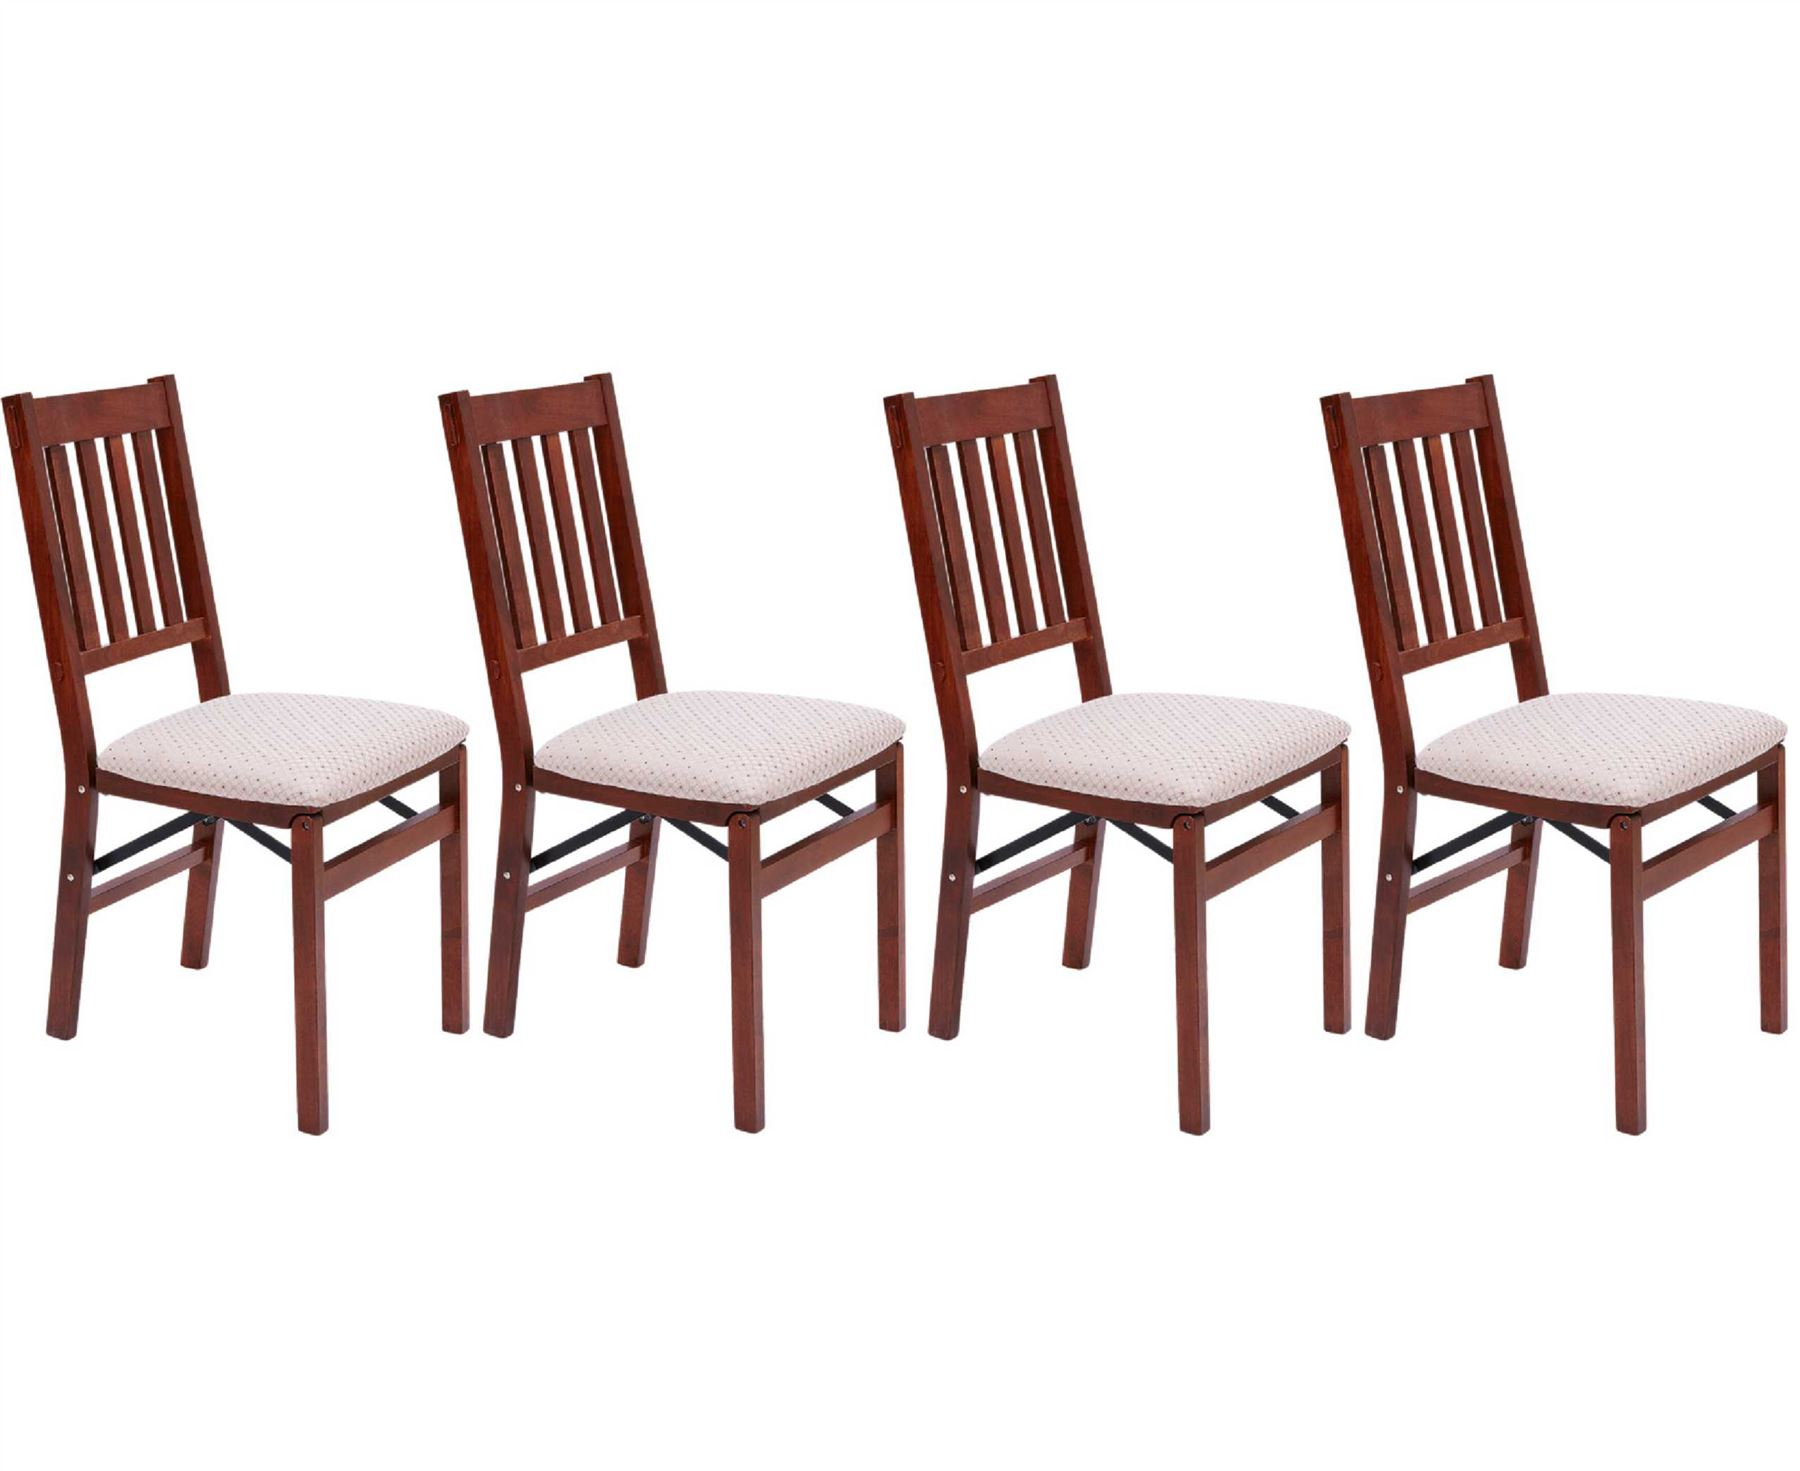 ec842ead56f1 Set Of 4 Arts   Crafts Folding Chair Dining Furniture Solid Wood Mahogany.  Click to zoom. x. x. x. x